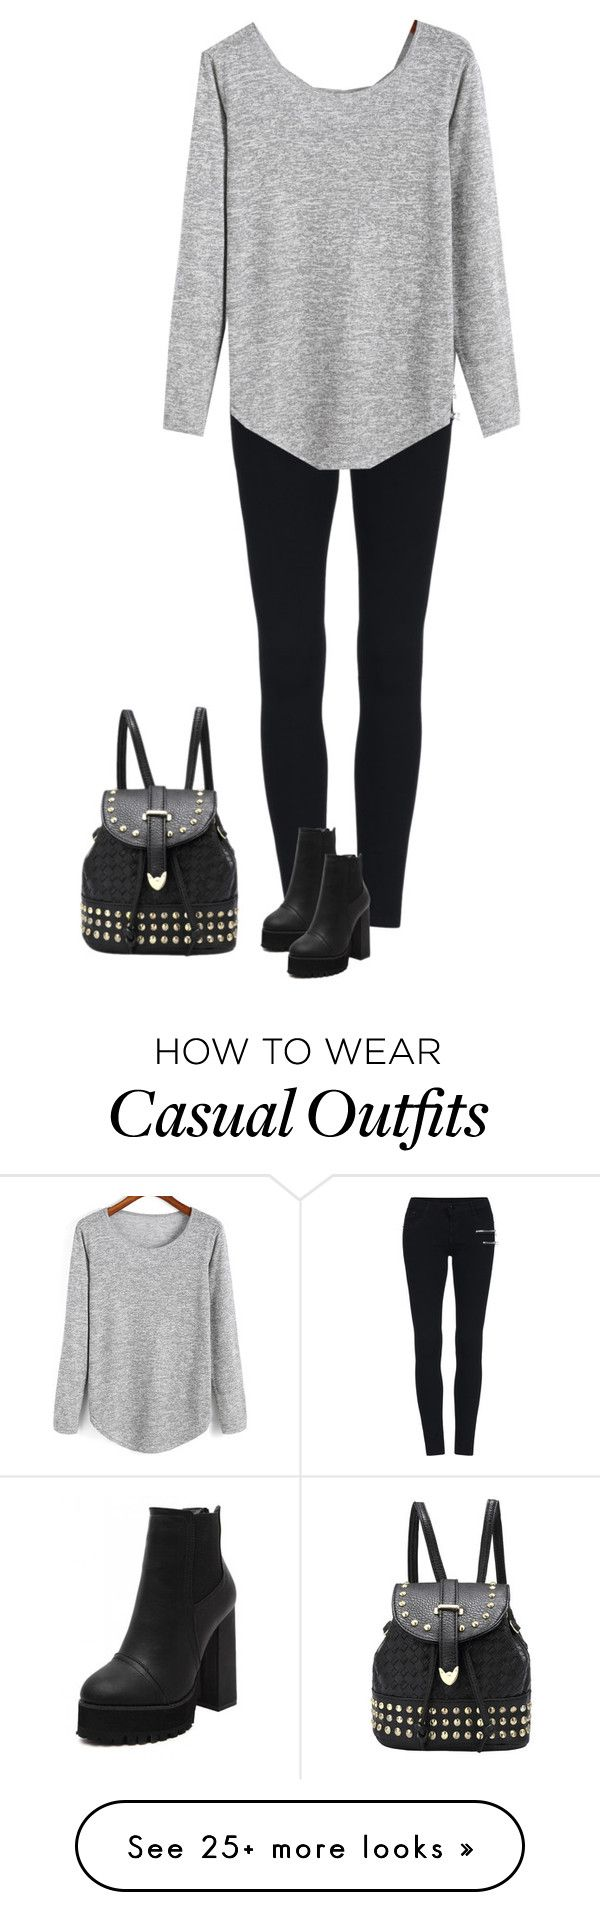 """""""Casual"""" by the-sickest666 on Polyvore featuring women's clothing, women's fashion, women, female, woman, misses and juniors"""